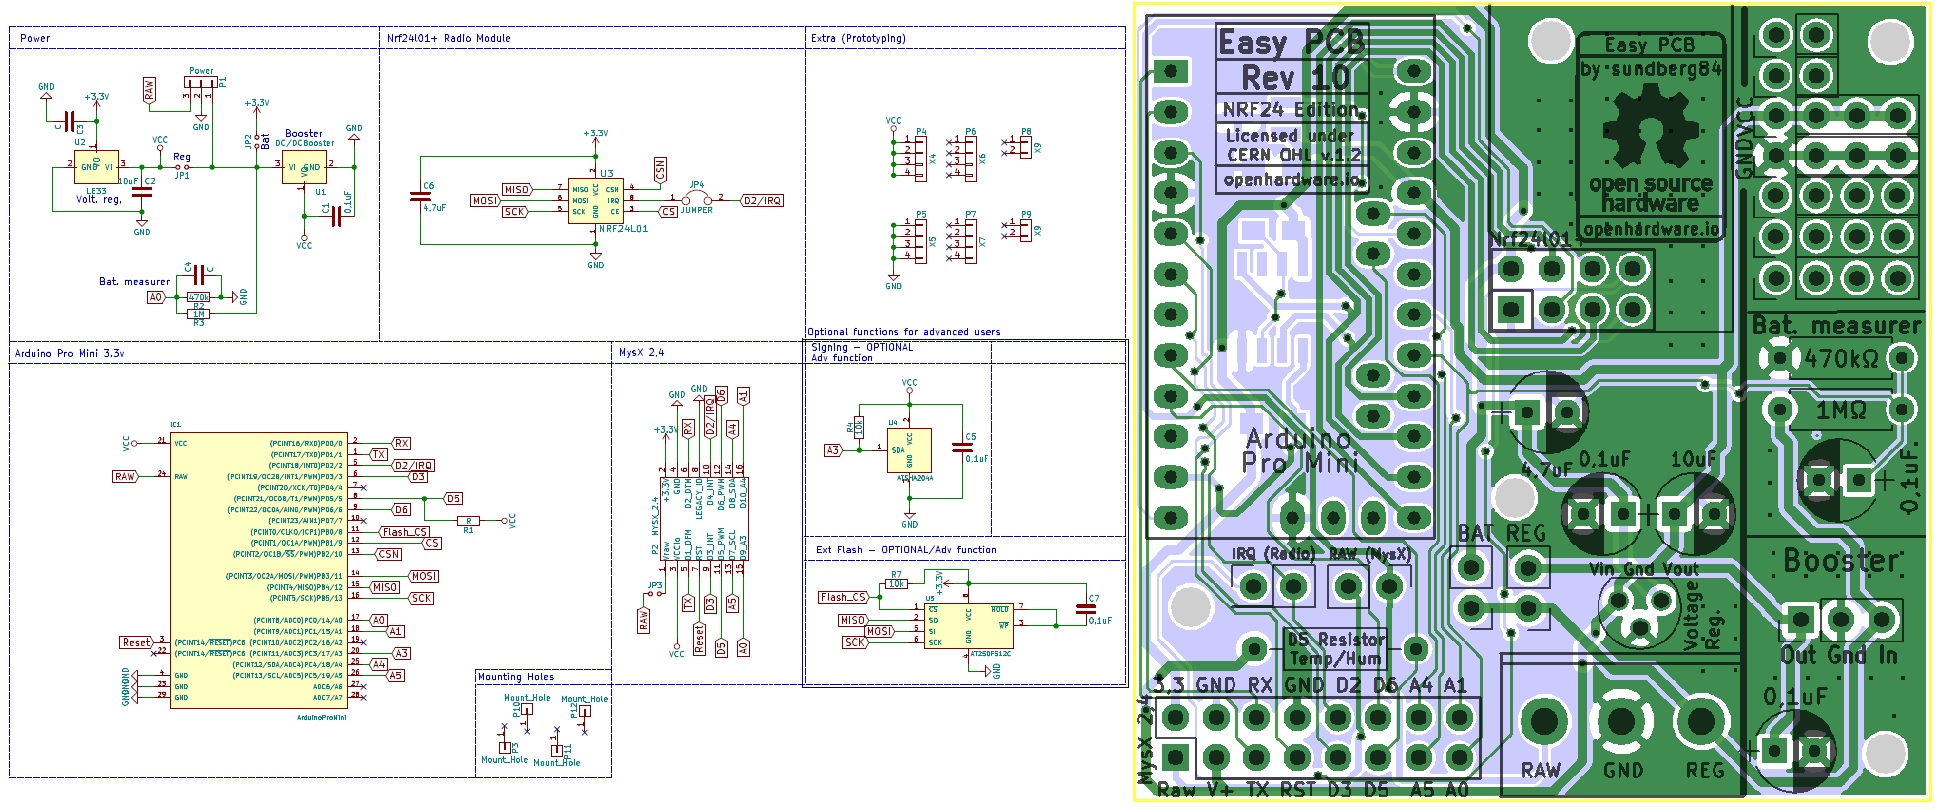 Easy Newbie Pcb For Mysensors Enables Open Usb Wiring Diagram Circuit Board Schematics Mini Enter Image Description Here